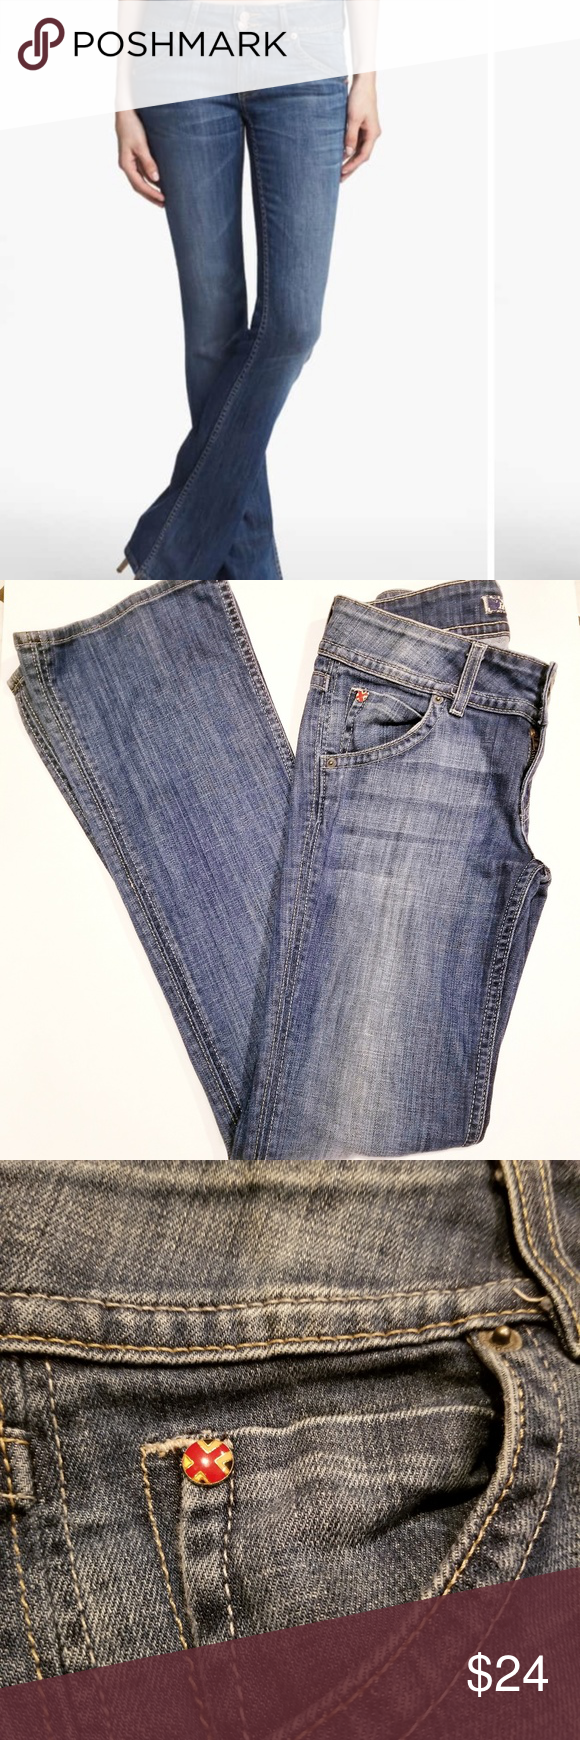 Hudson's Jeans Size 26 Hudson Double Button Jeans, some